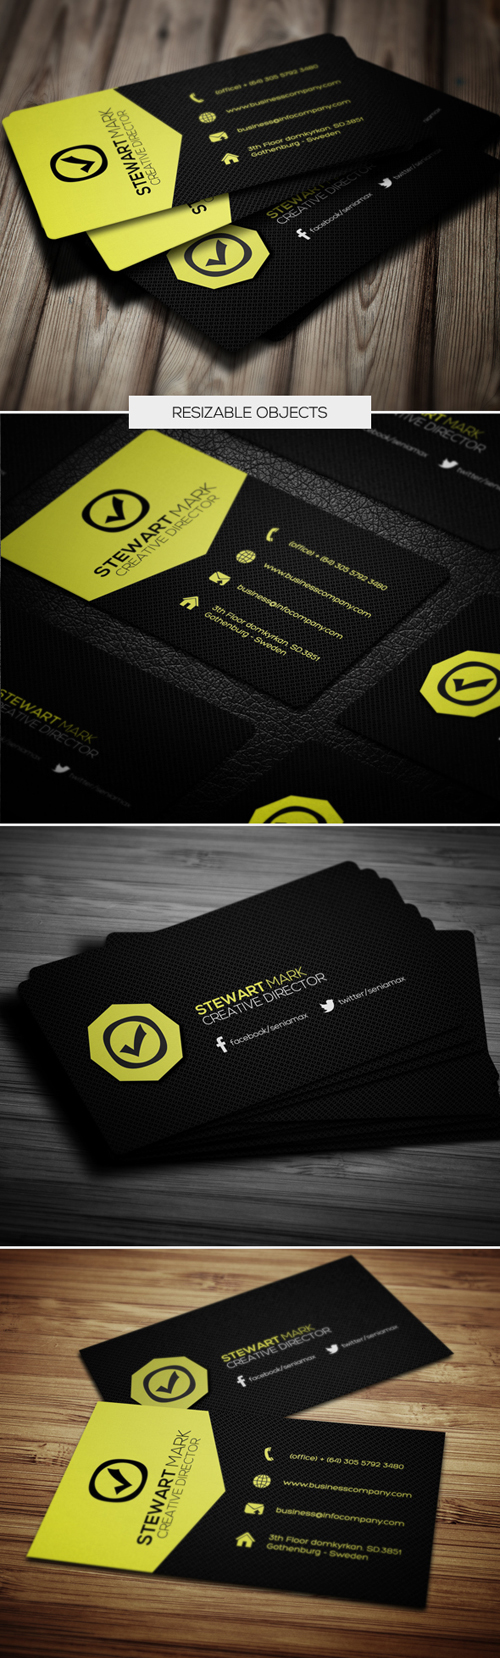 business cards template design - 7